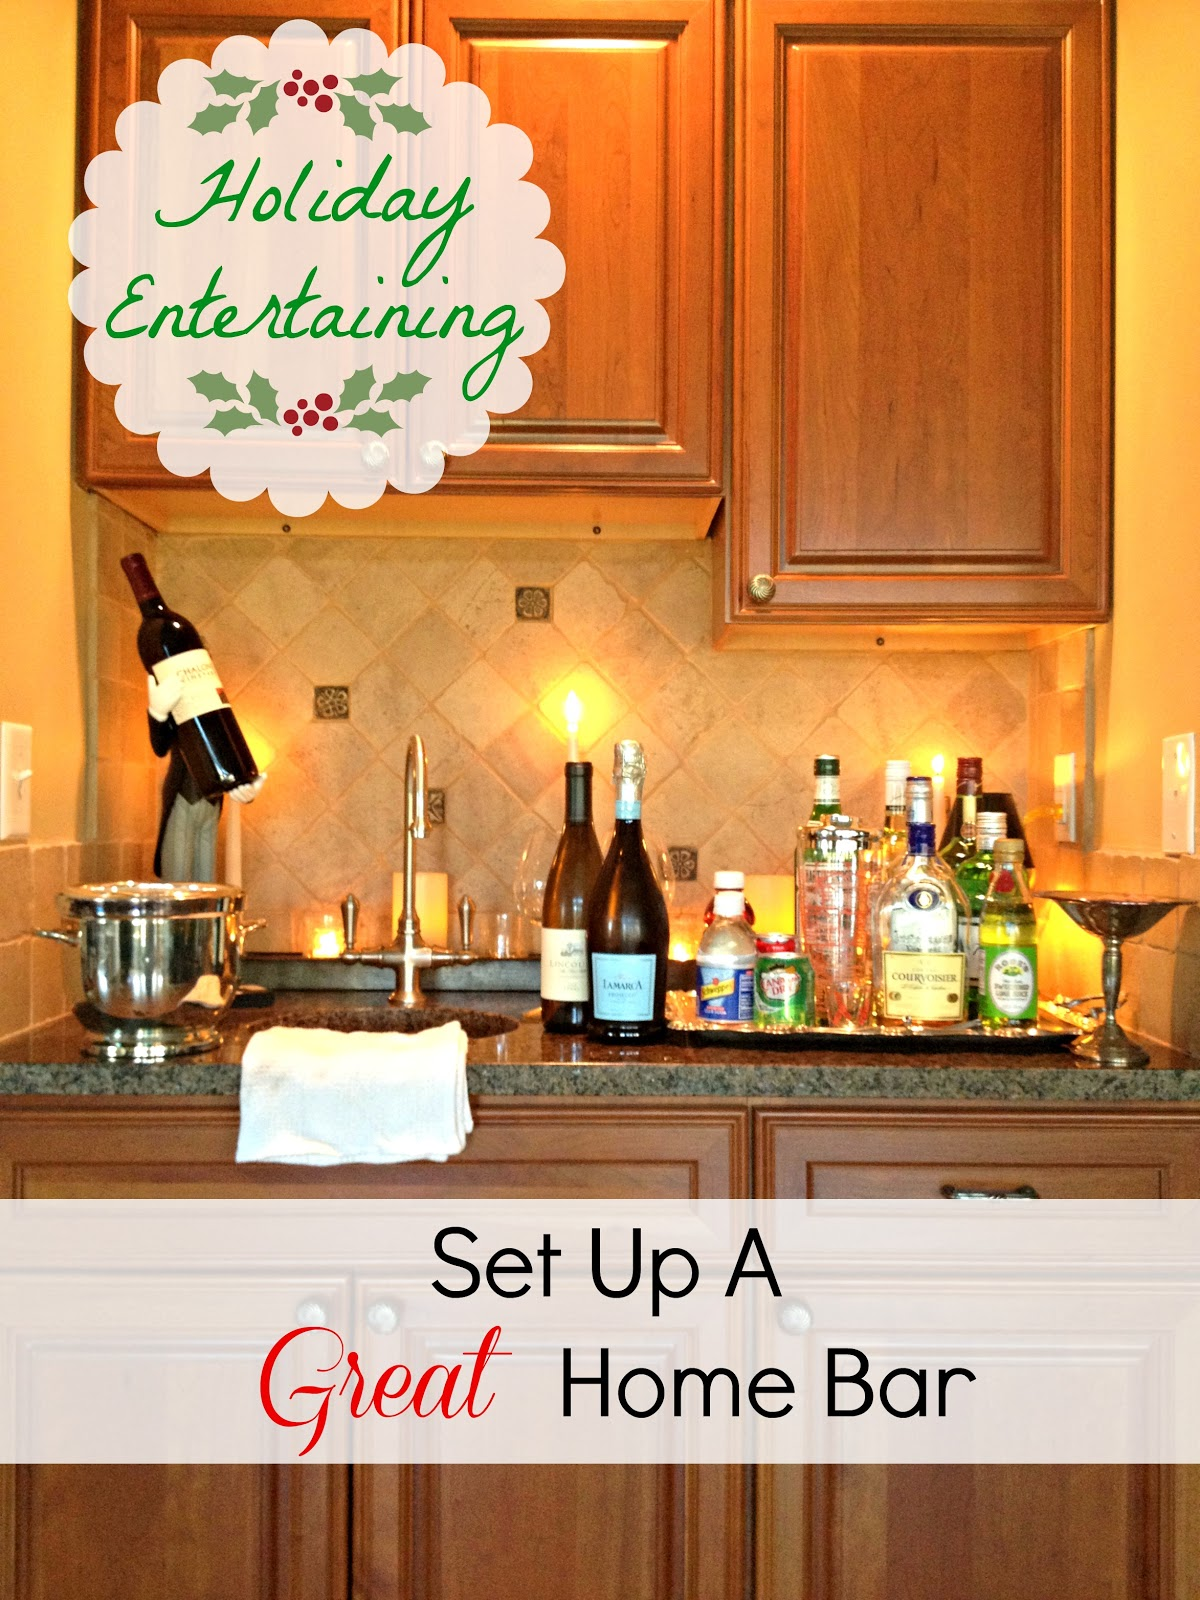 Decor Amore: How To Set Up A Home Bar For The Holiday's